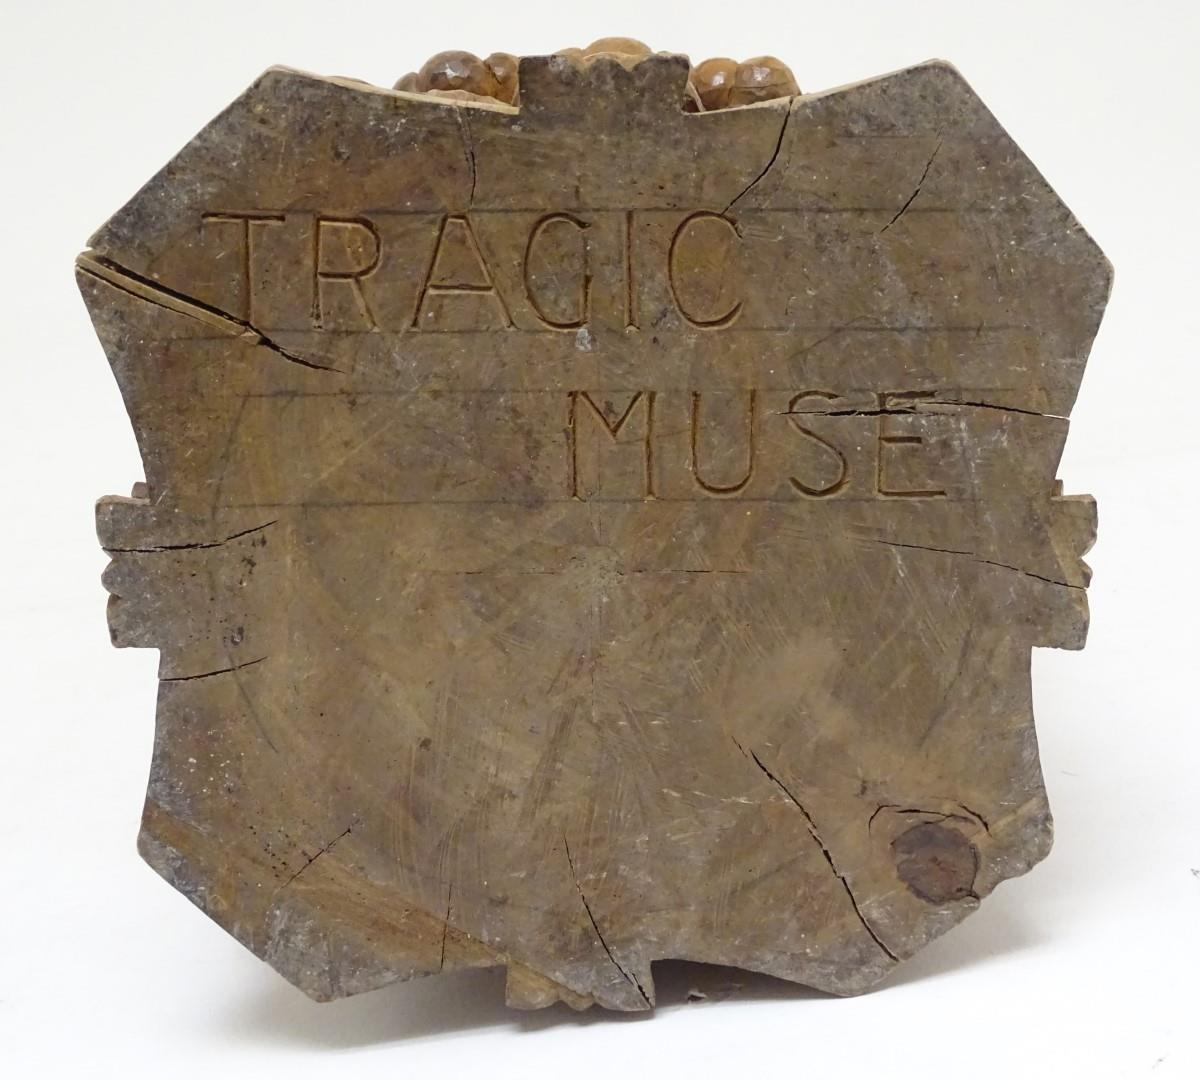 A 20thC carved wooden sculpture titled Tragic Muse to base, monogrammed TD and dated 1971 to side. - Image 2 of 17